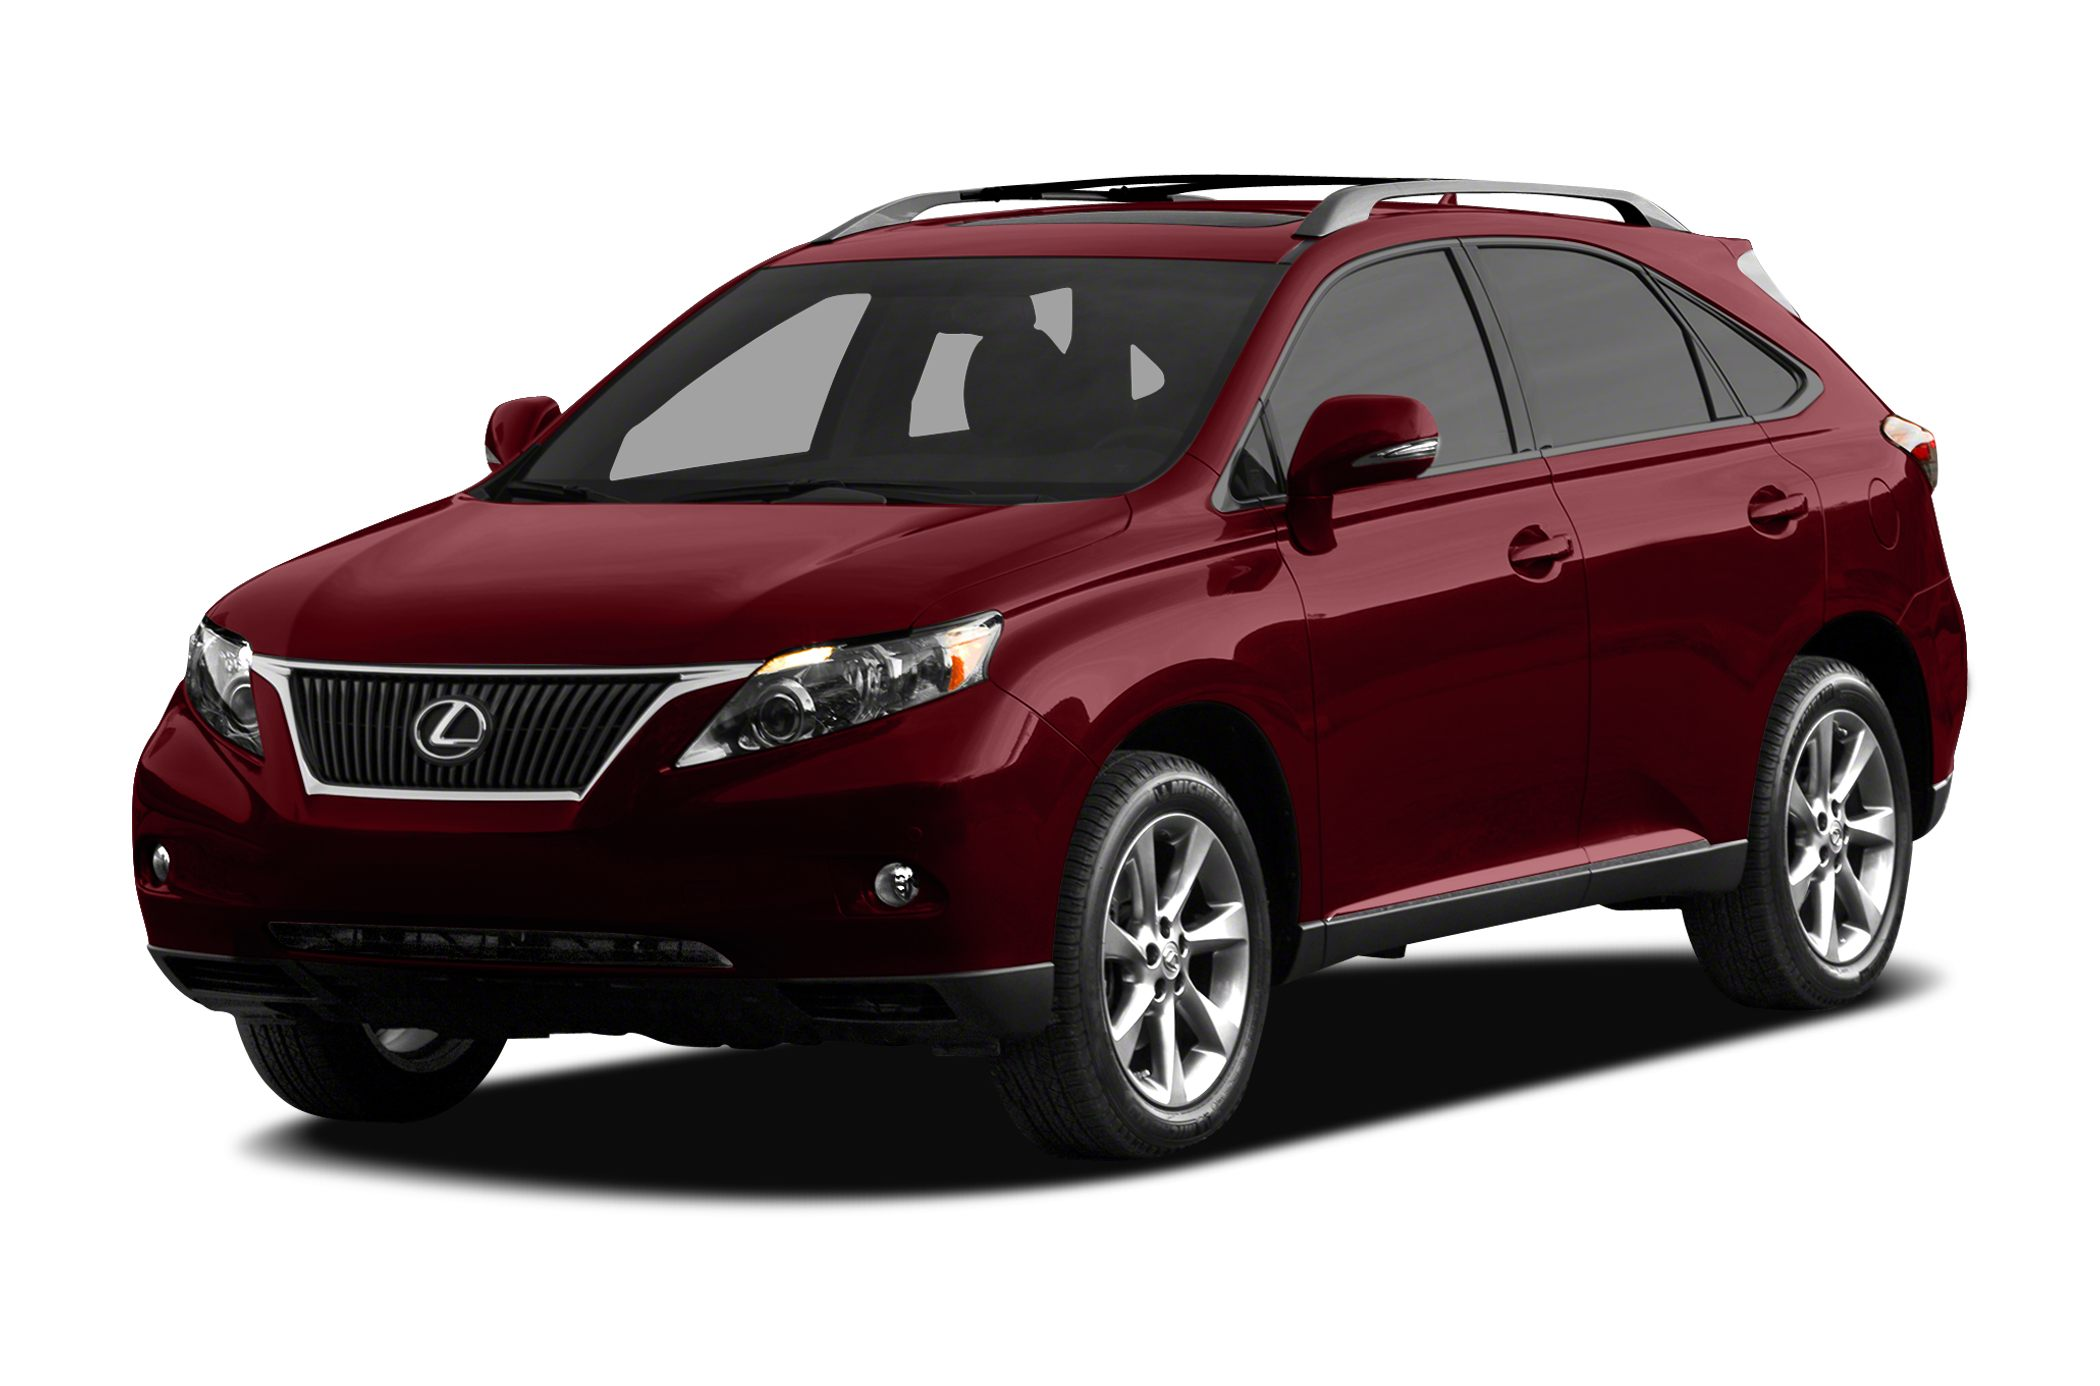 2011 Lexus RX 350 Base New Arrival Bluetooth Multi-Zone Air Conditioning Auto Climate Control